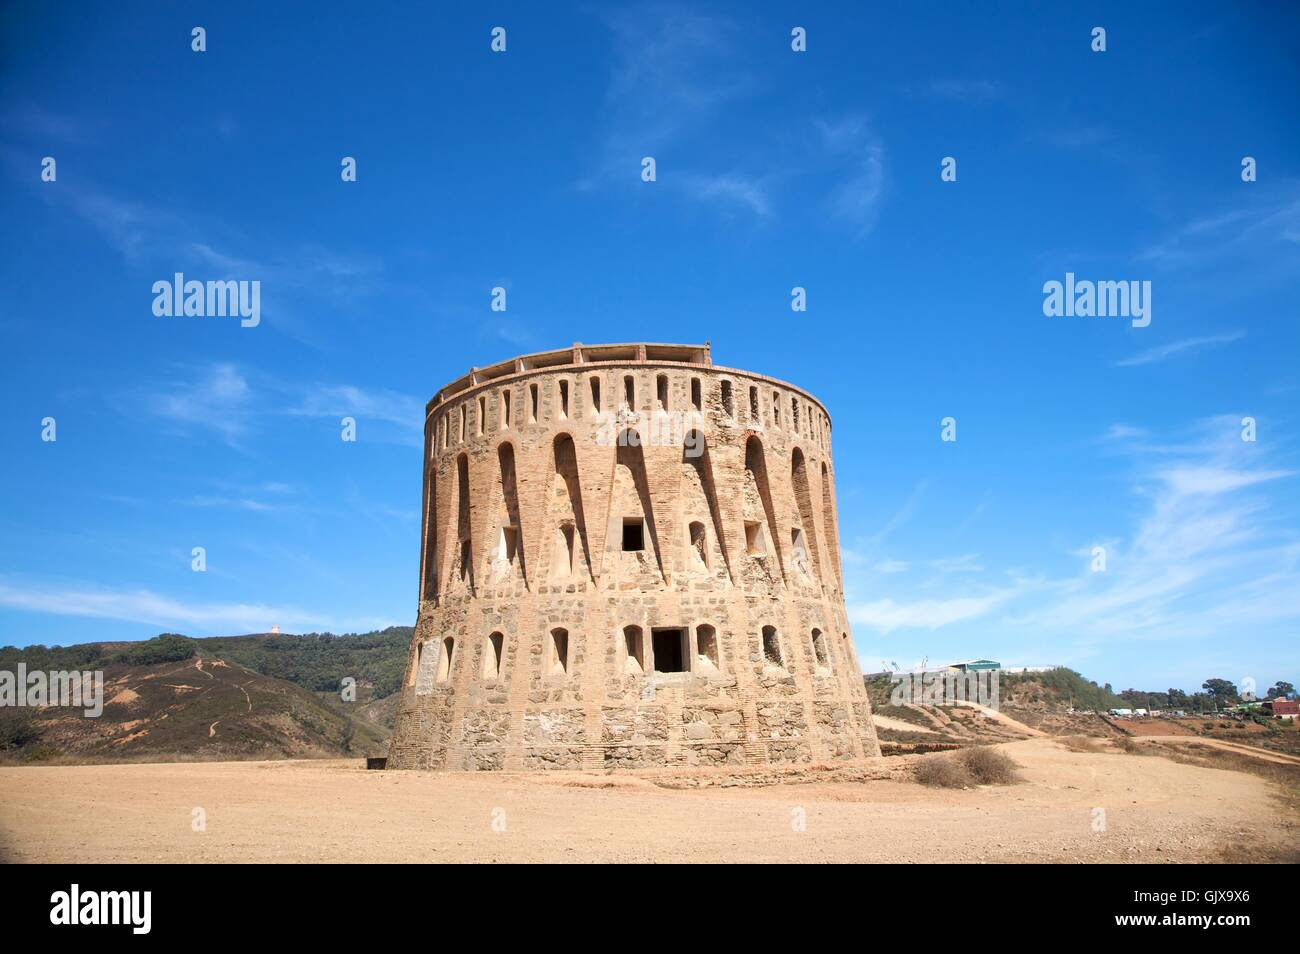 tower monument stone - Stock Image